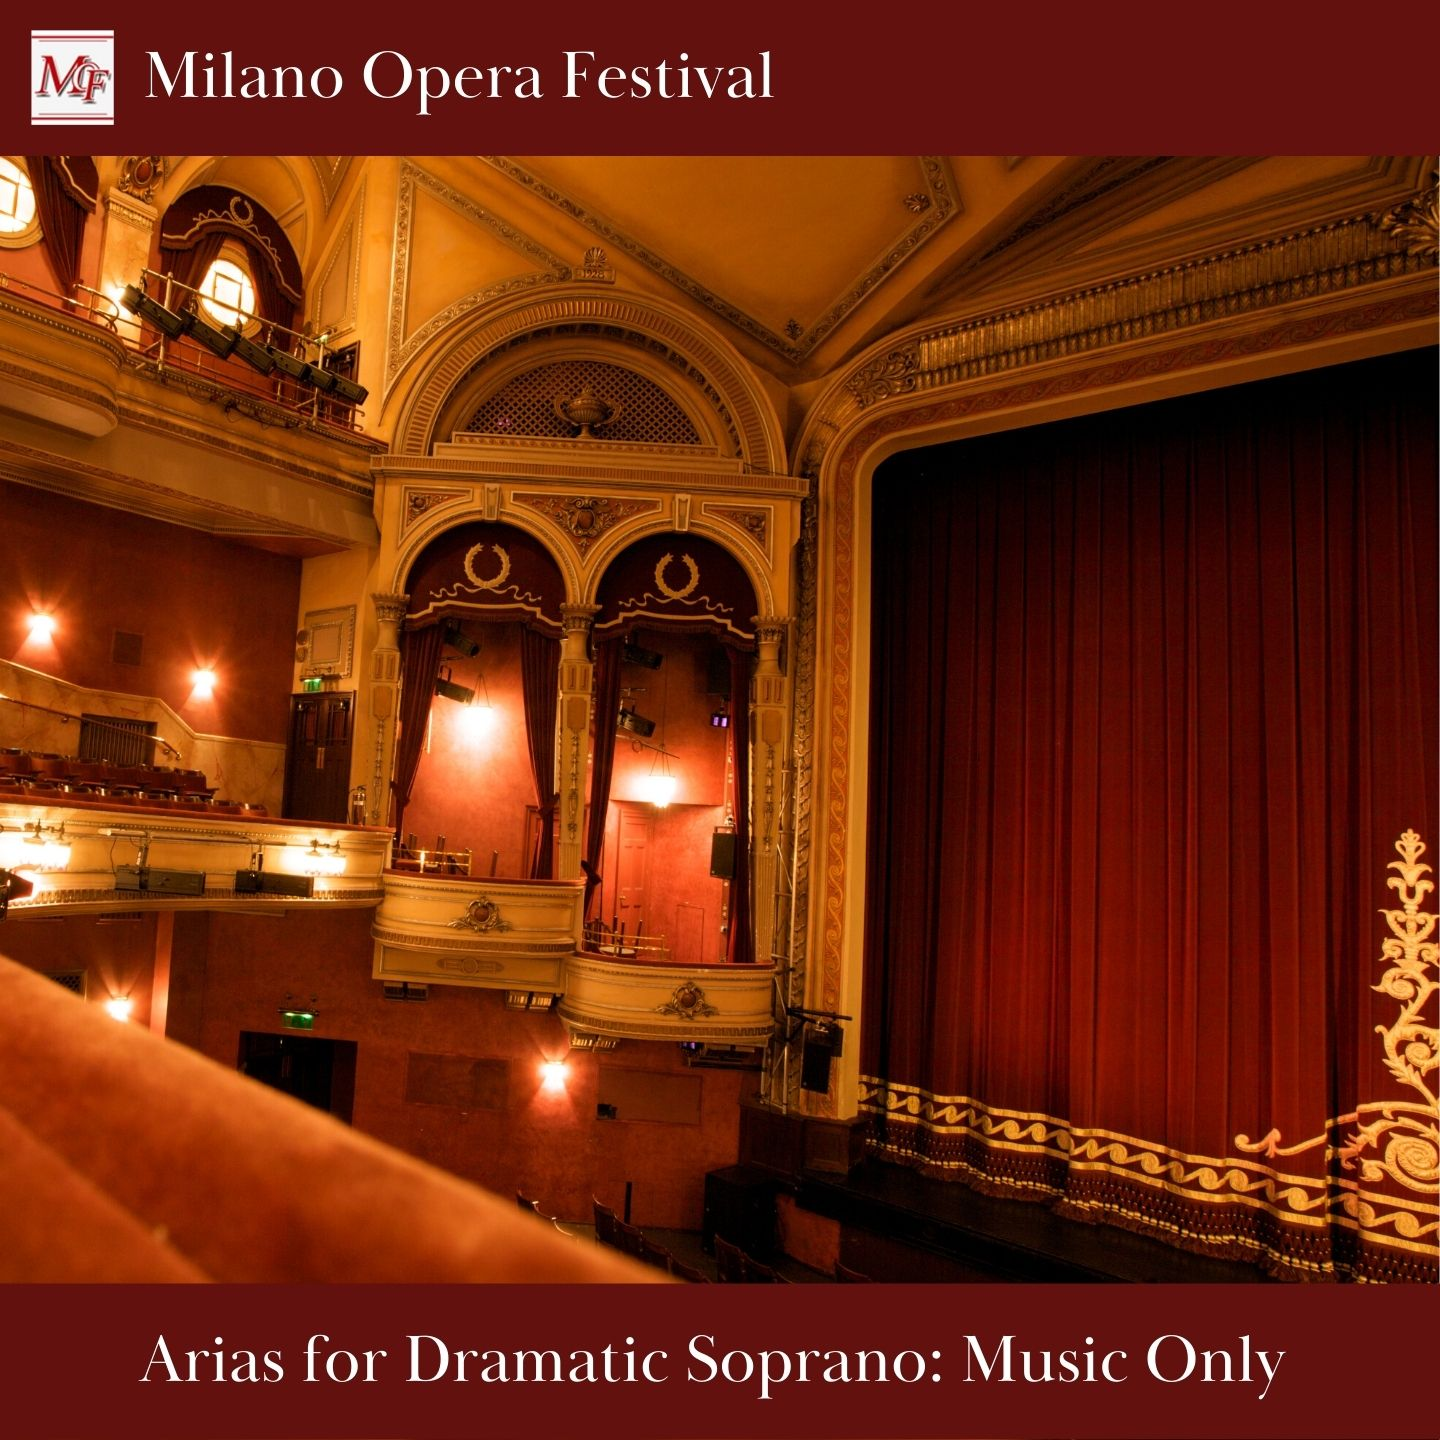 Arias for Dramatic Soprano - Only Music + Video Karaoke Tutorial